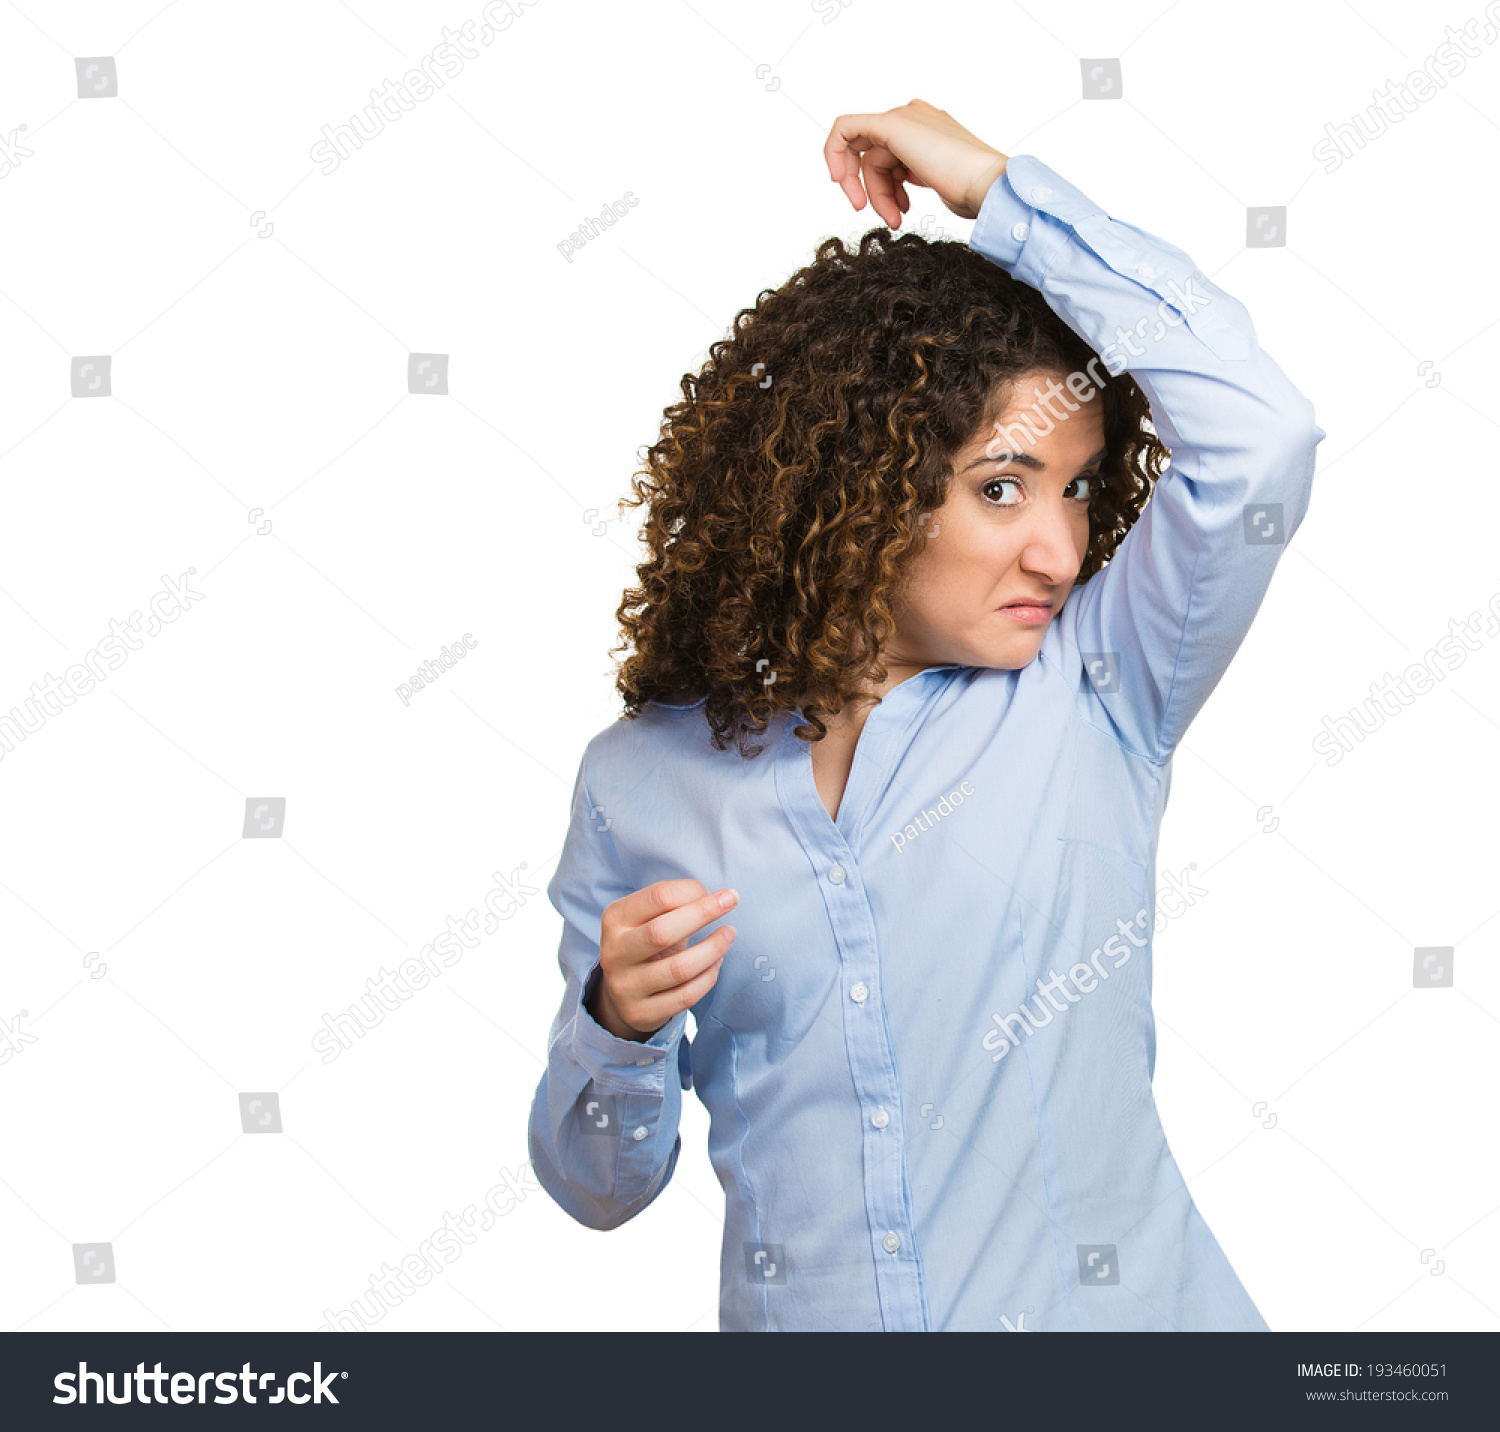 Closeup portrait young woman smelling sniffing her wet for How to get bad smell out of armpits in shirts